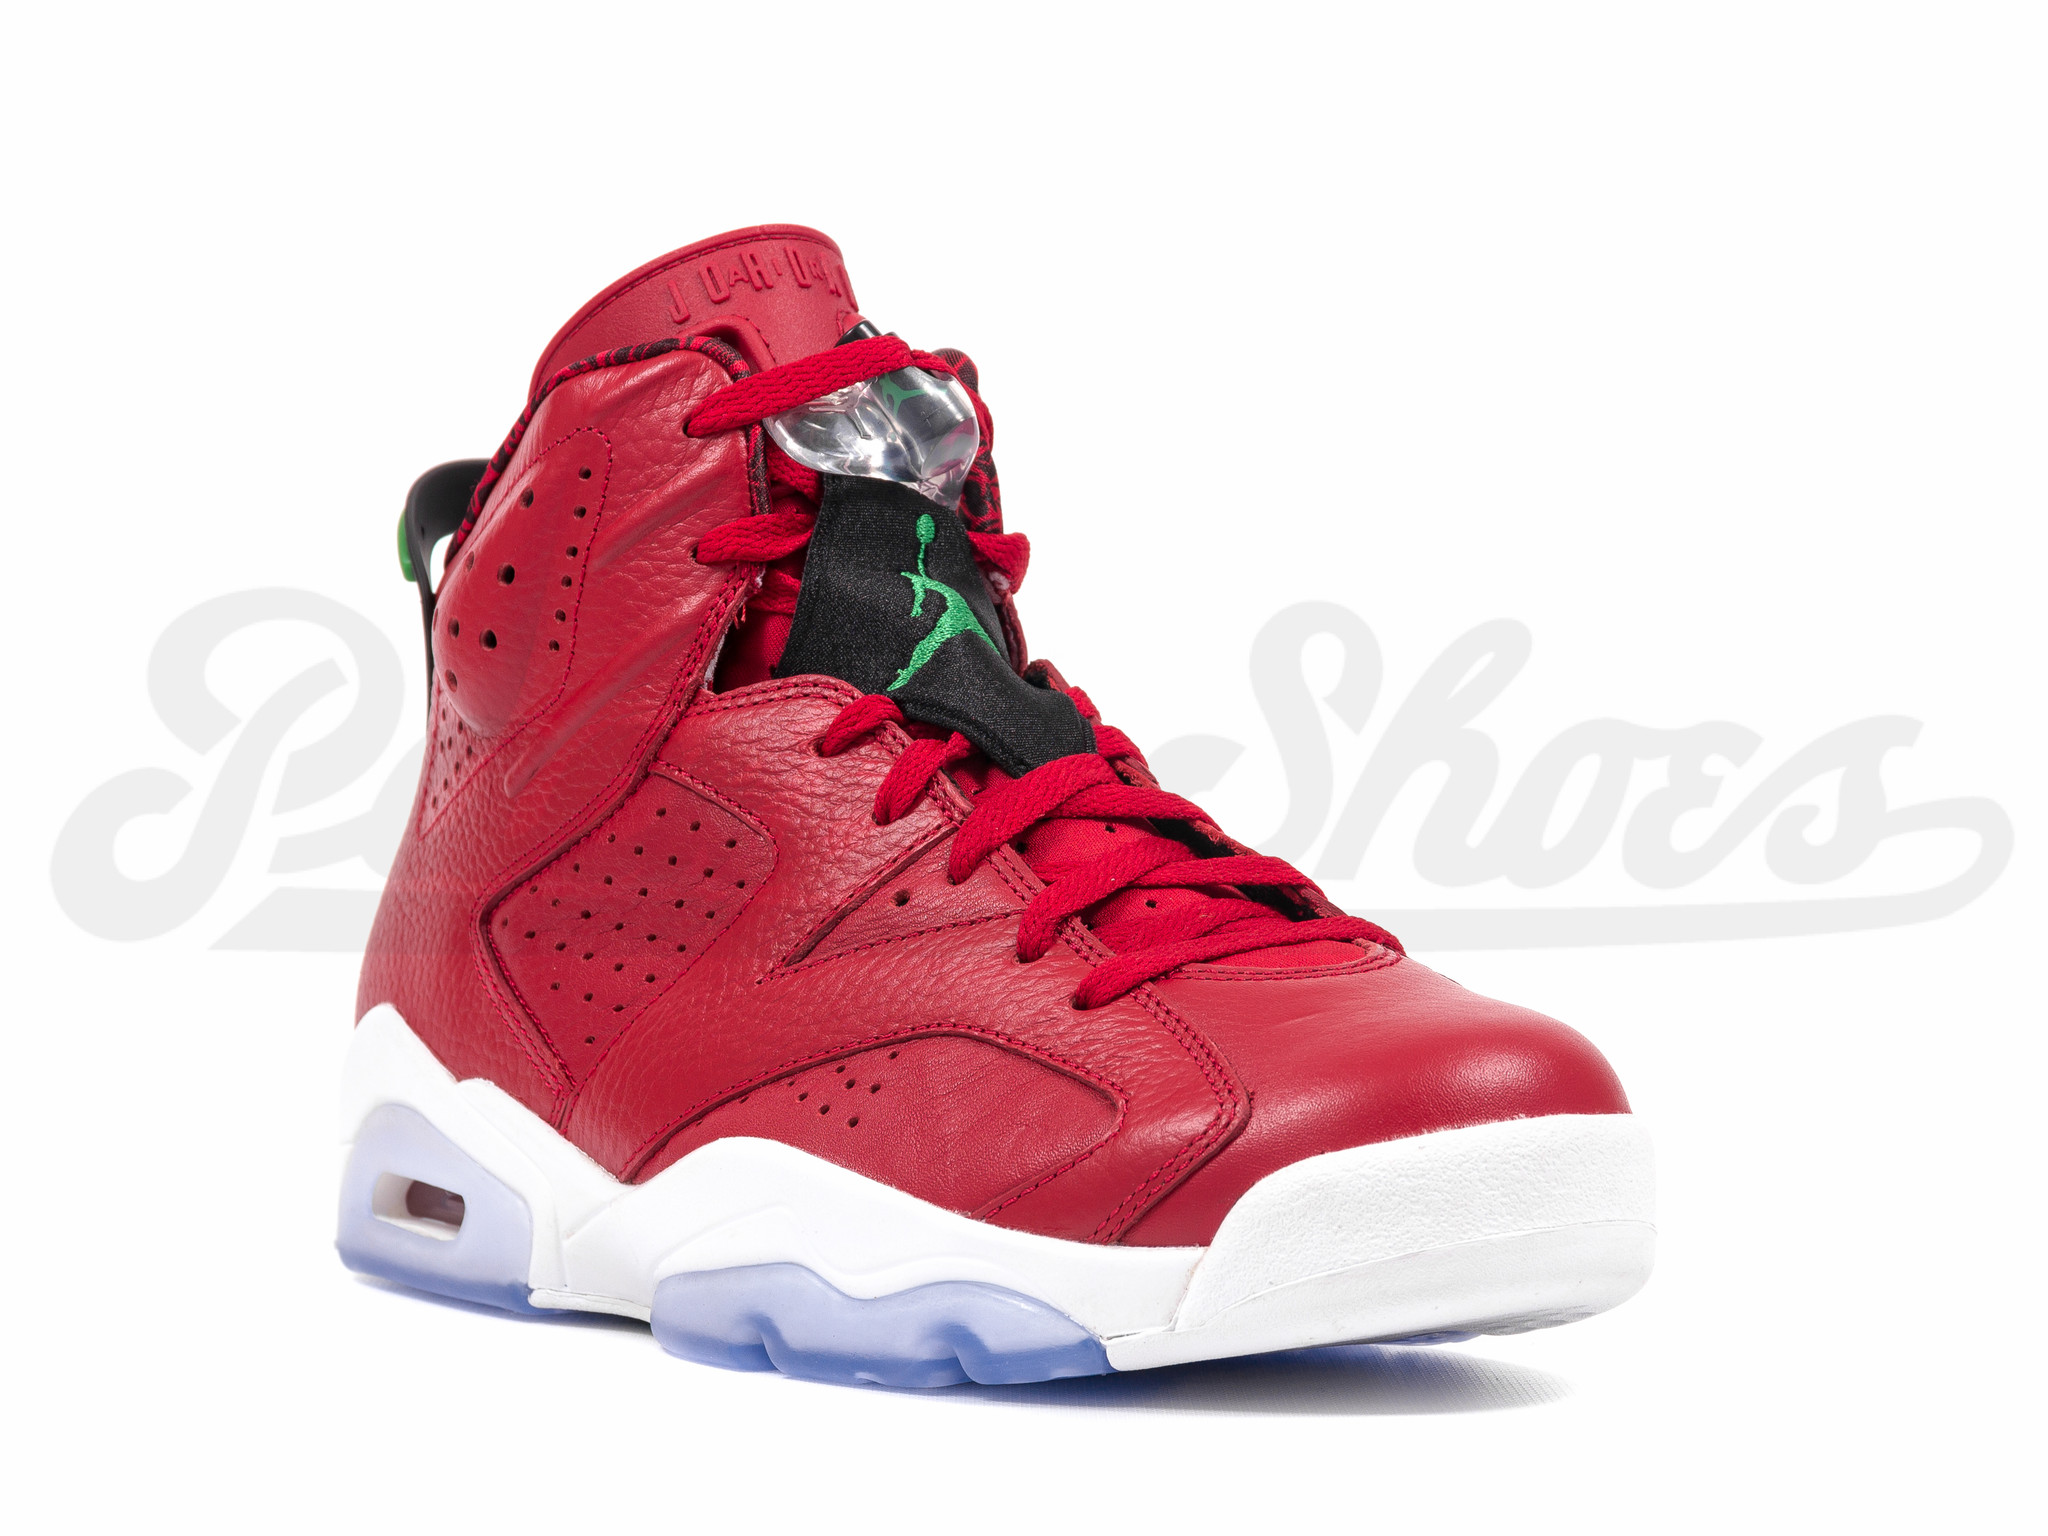 "d559afdefc5 Air Jordan 6 ""History of Jordan"" Color  Varsity Red Classic  Green-Black-White Style Code  694091-625. Release Date  08 09 14. Price    170"